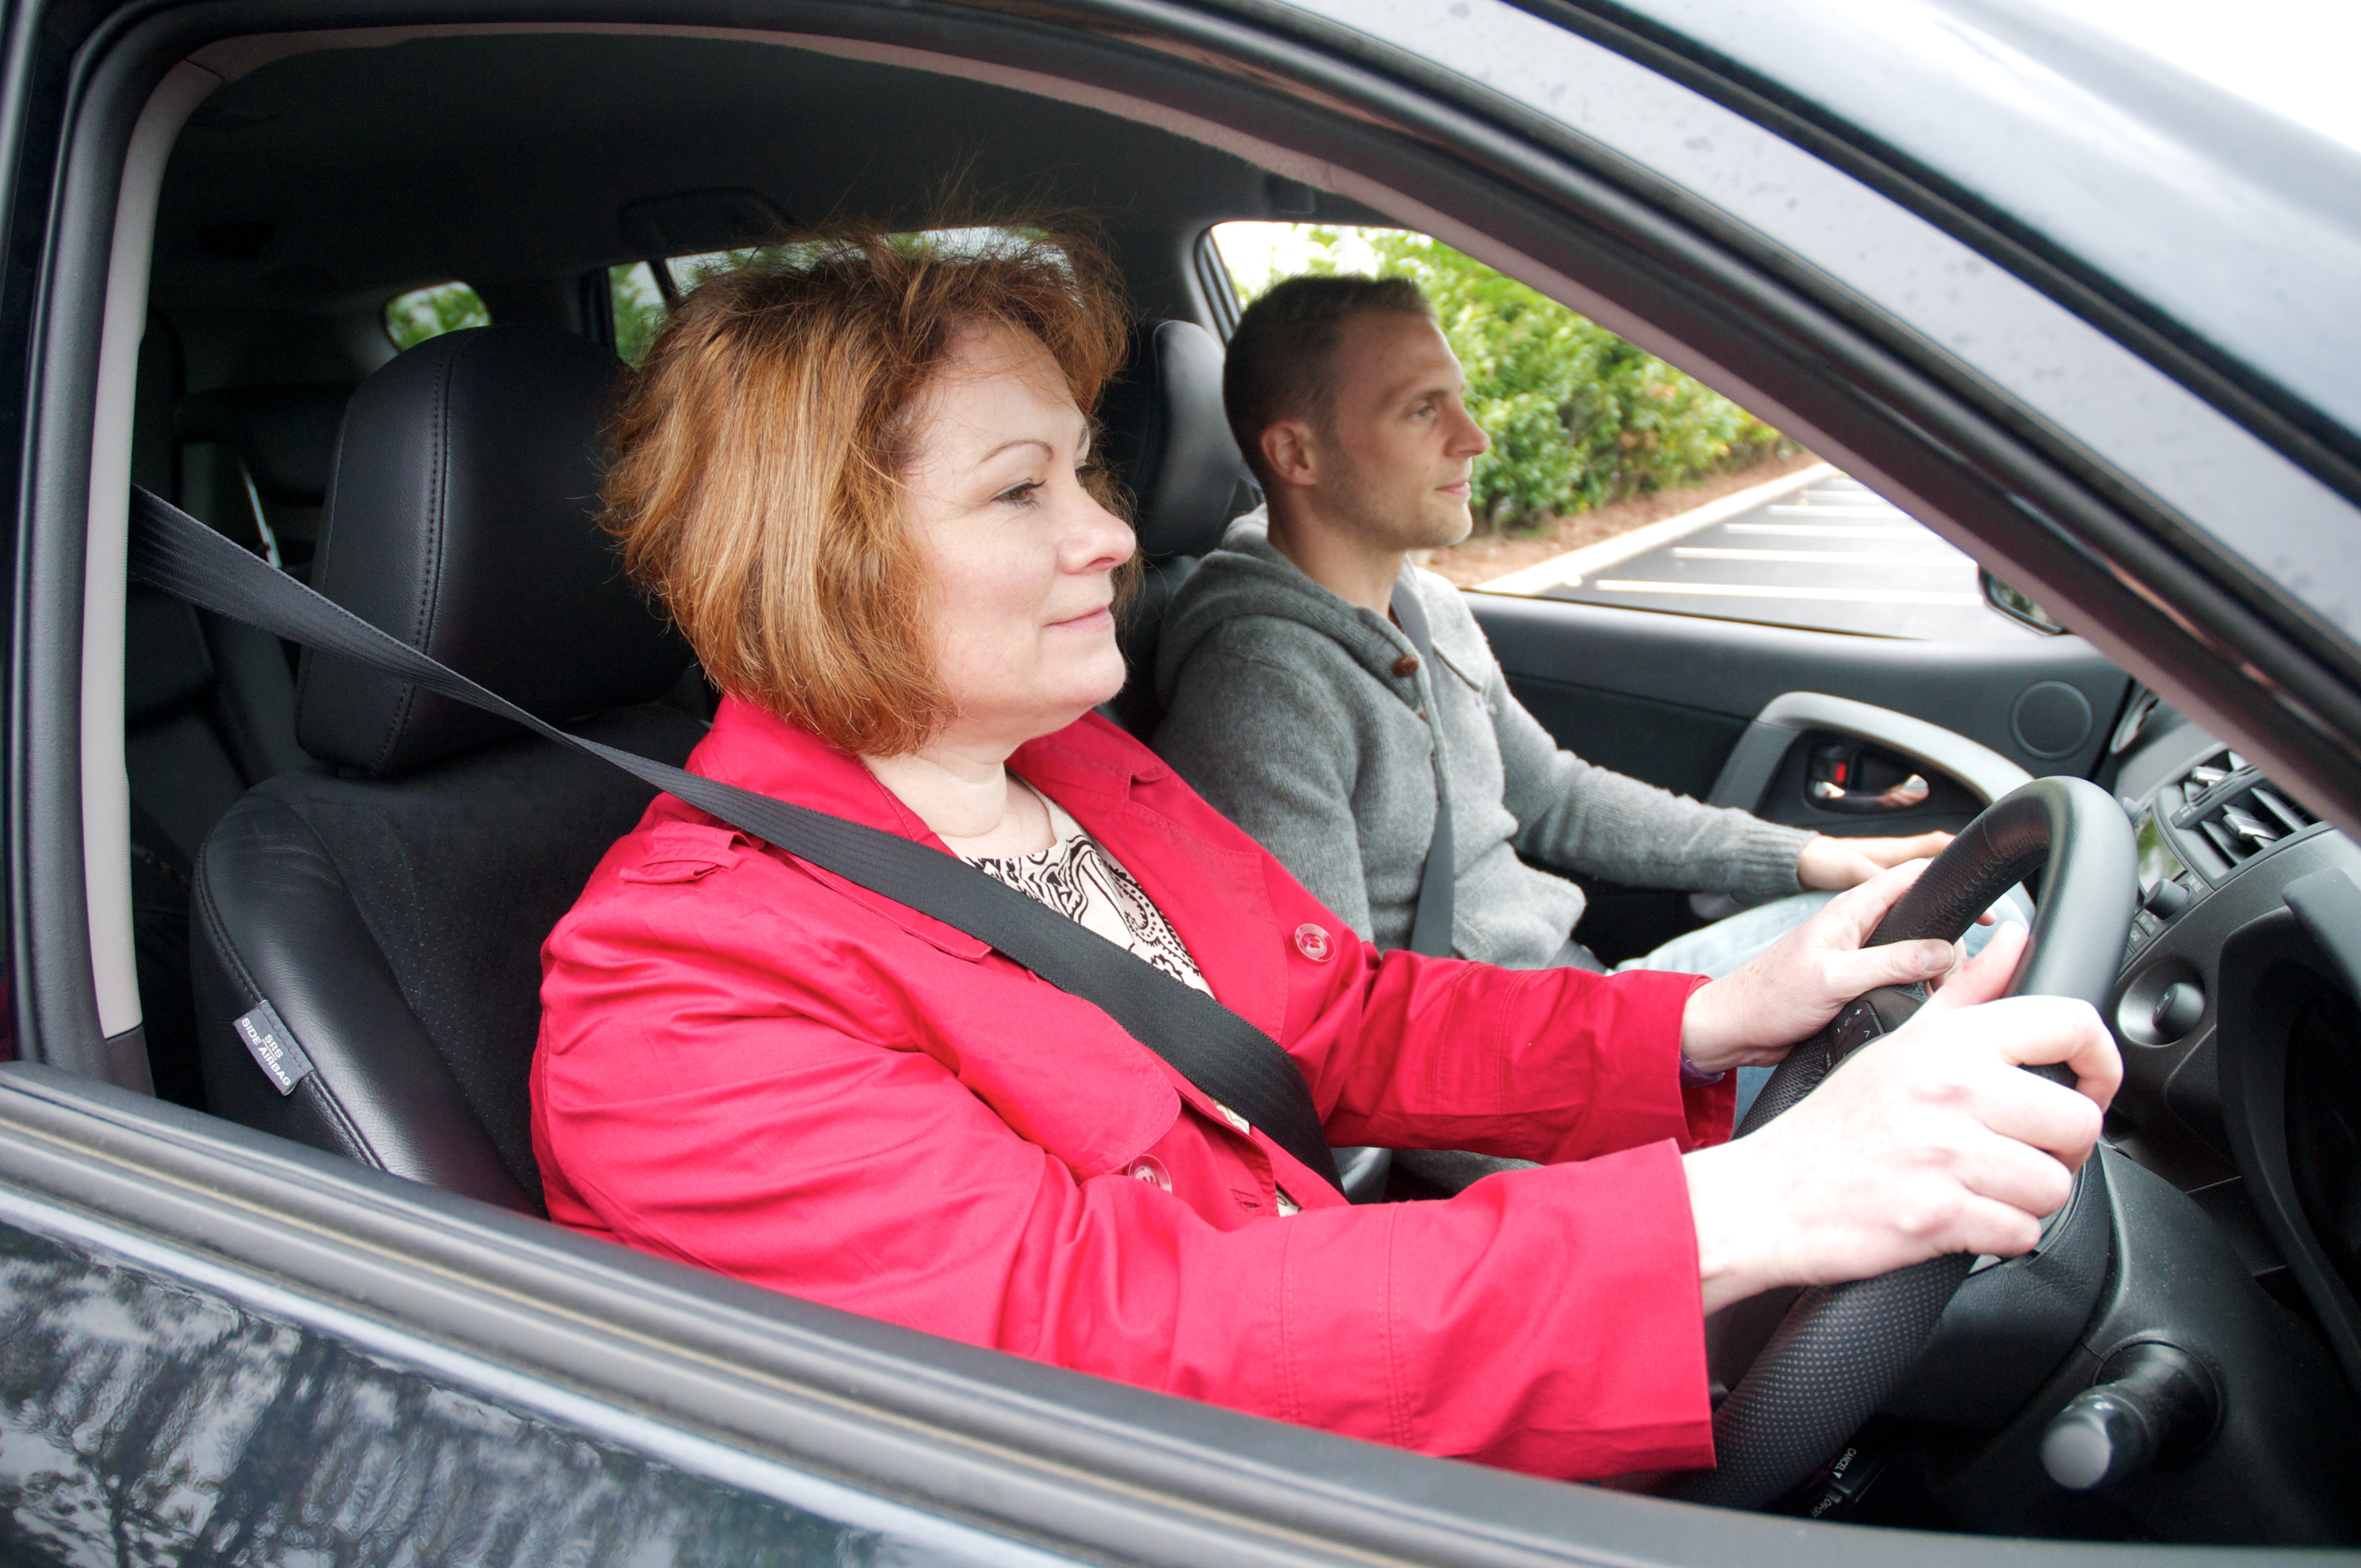 Female in red jacket driving car with male passenger